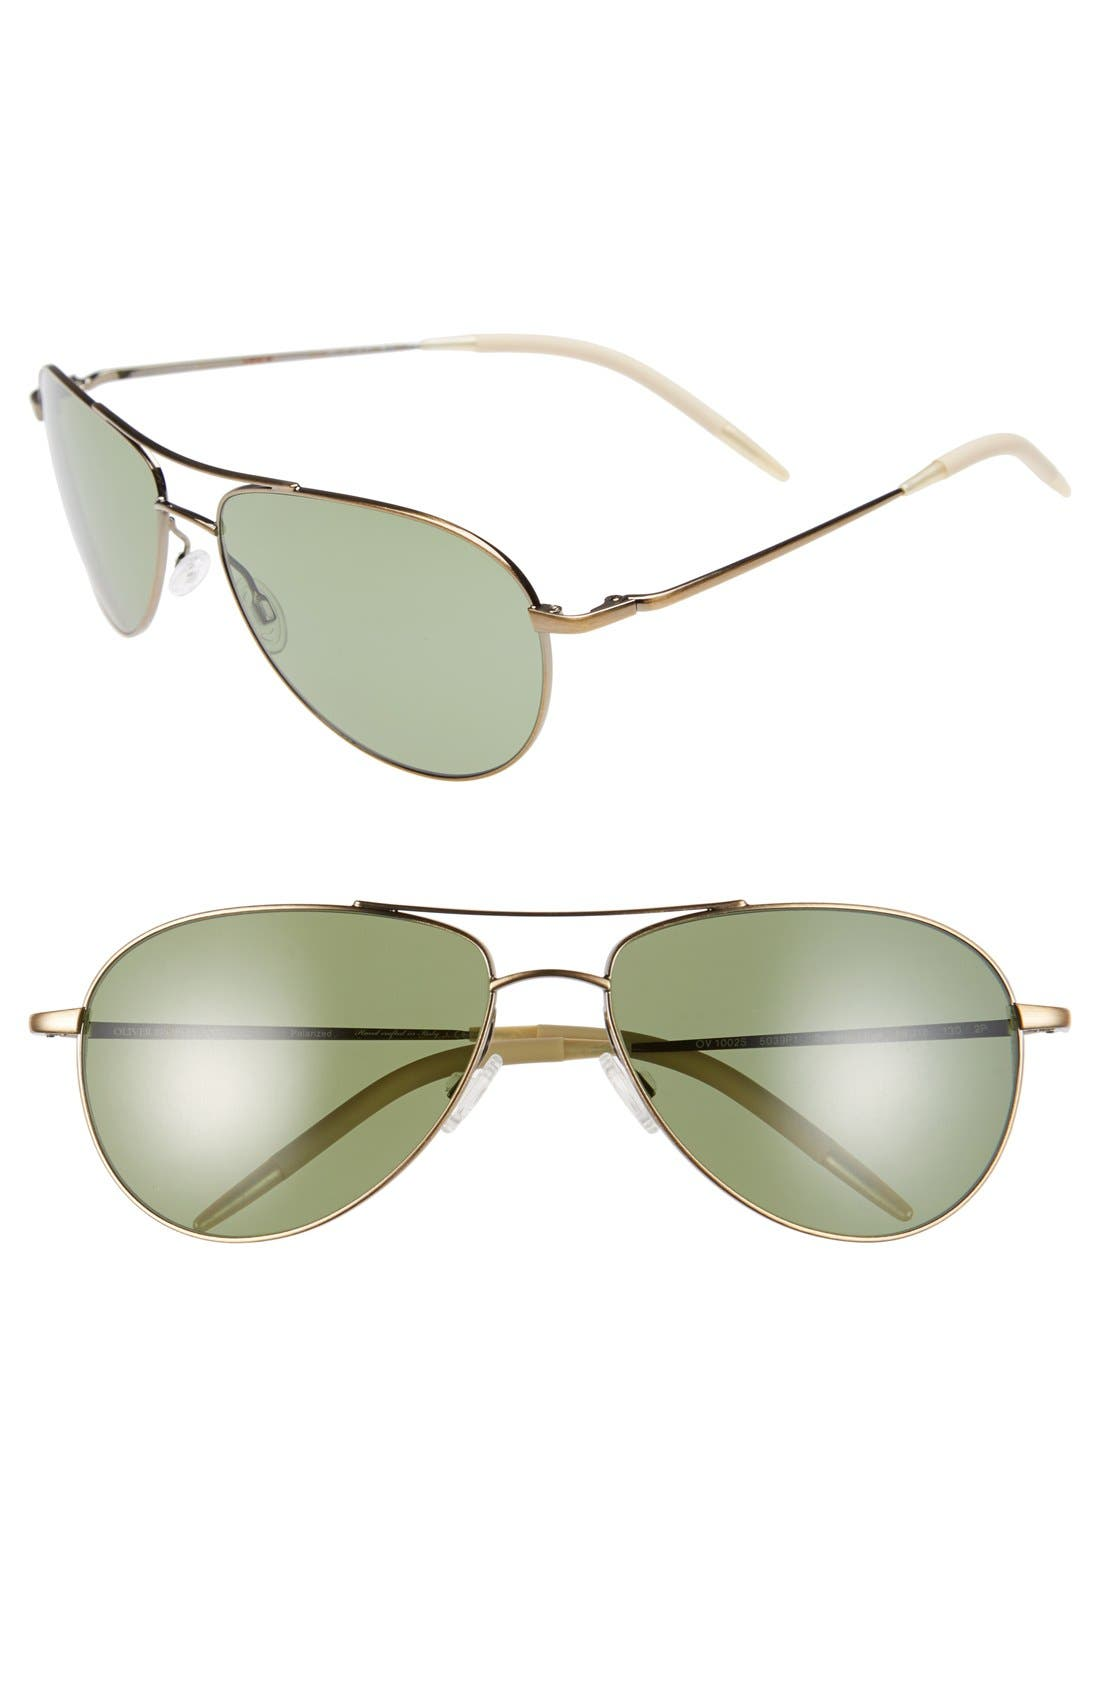 Alternate Image 1 Selected - Oliver Peoples 'Benedict' 59mm Polarized Aviator Sunglasses